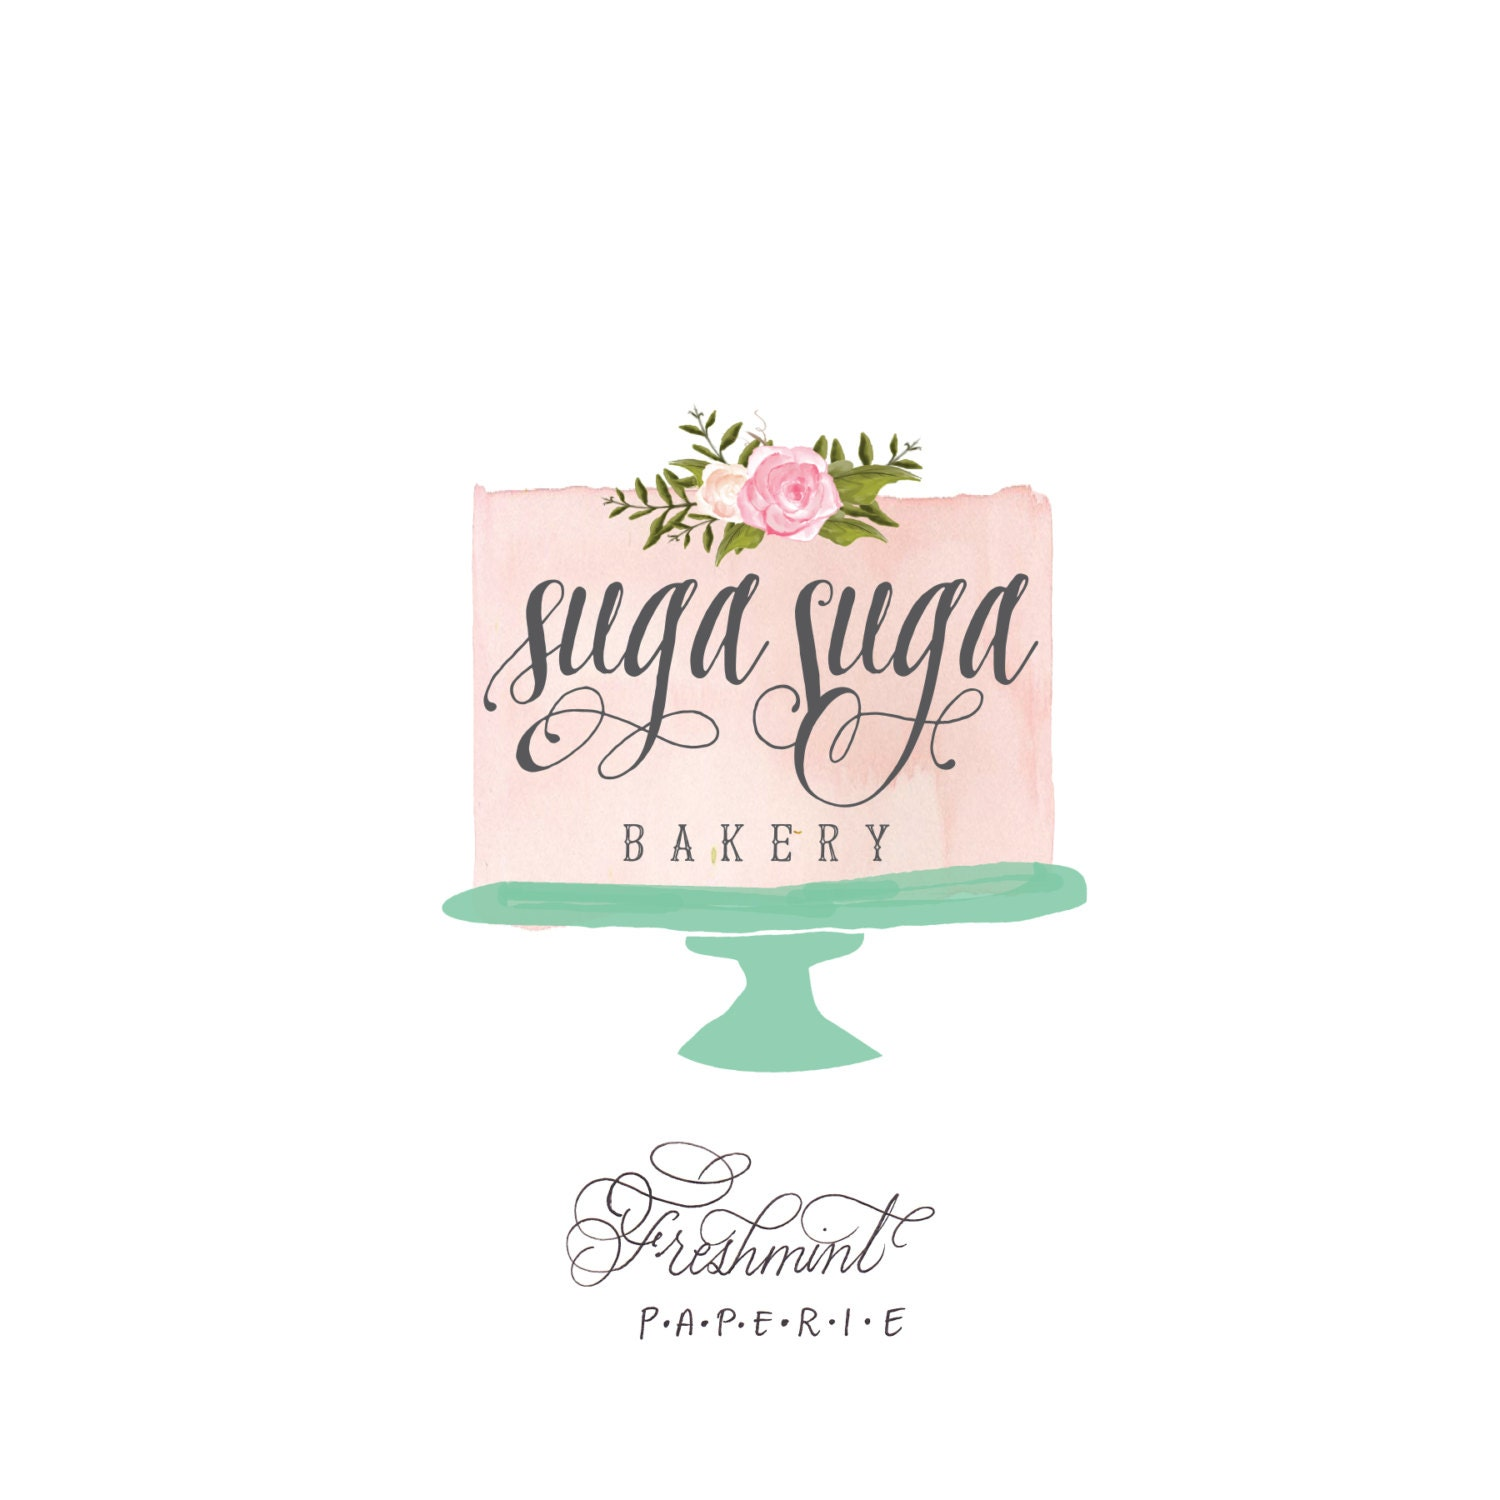 gallery for cute bakery logos